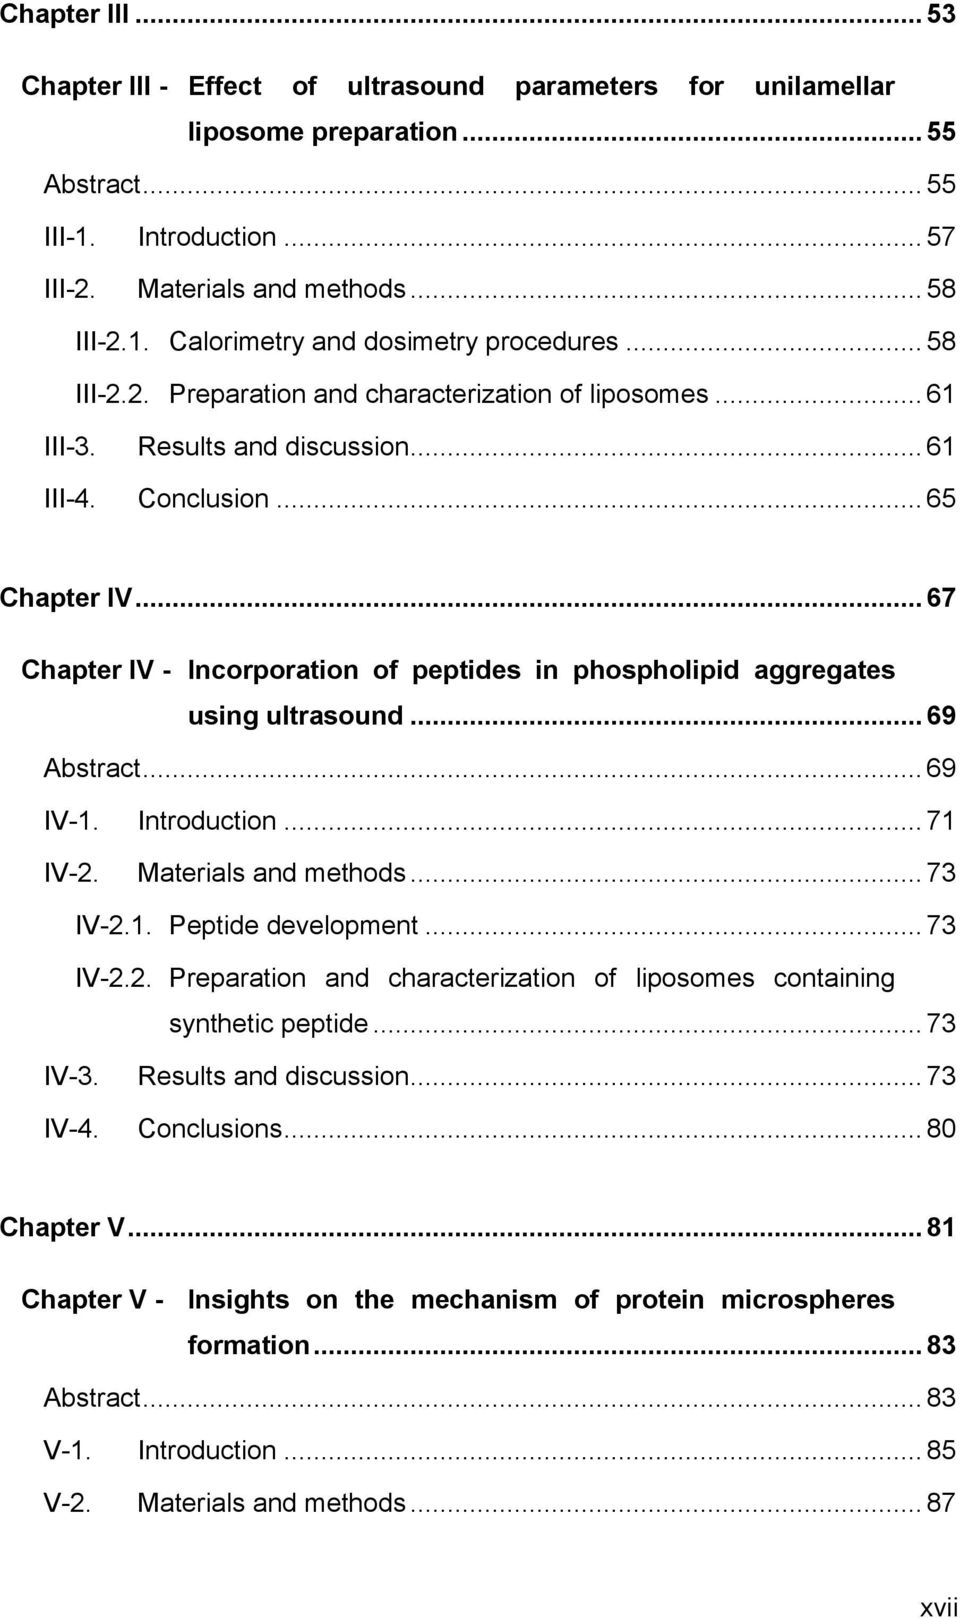 .. 67 Chapter IV - Incorporation of peptides in phospholipid aggregates using ultrasound... 69 Abstract... 69 IV-1. IV-2. Introduction... 71 Materials and methods... 73 IV-2.1. Peptide development.